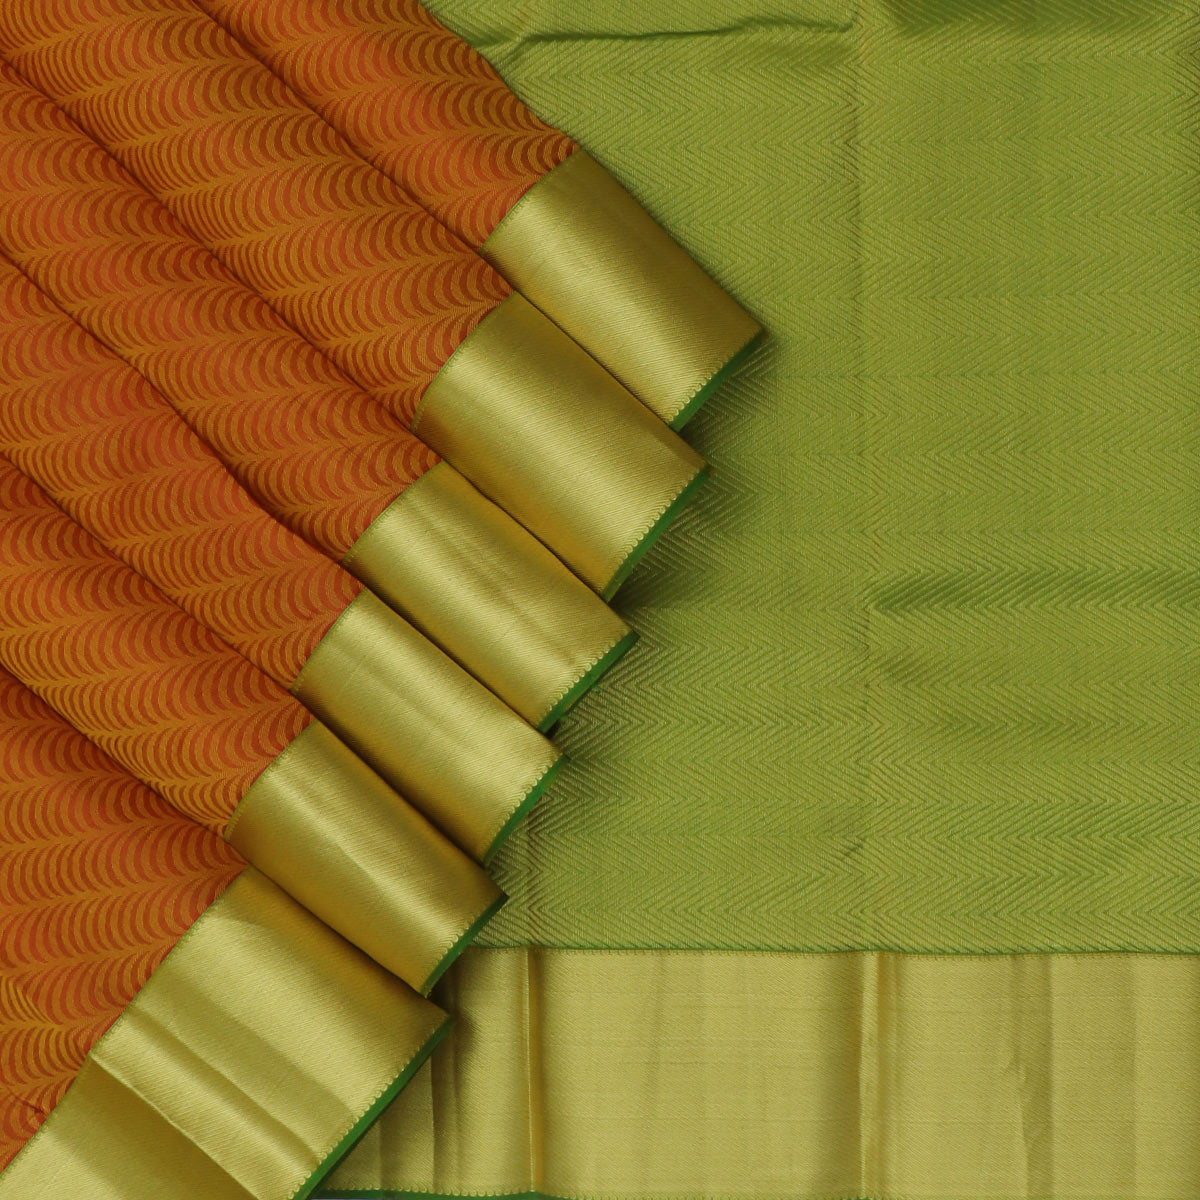 kanjivaram Silk Saree Yellow with Maroon dual Shade and Green with zari border